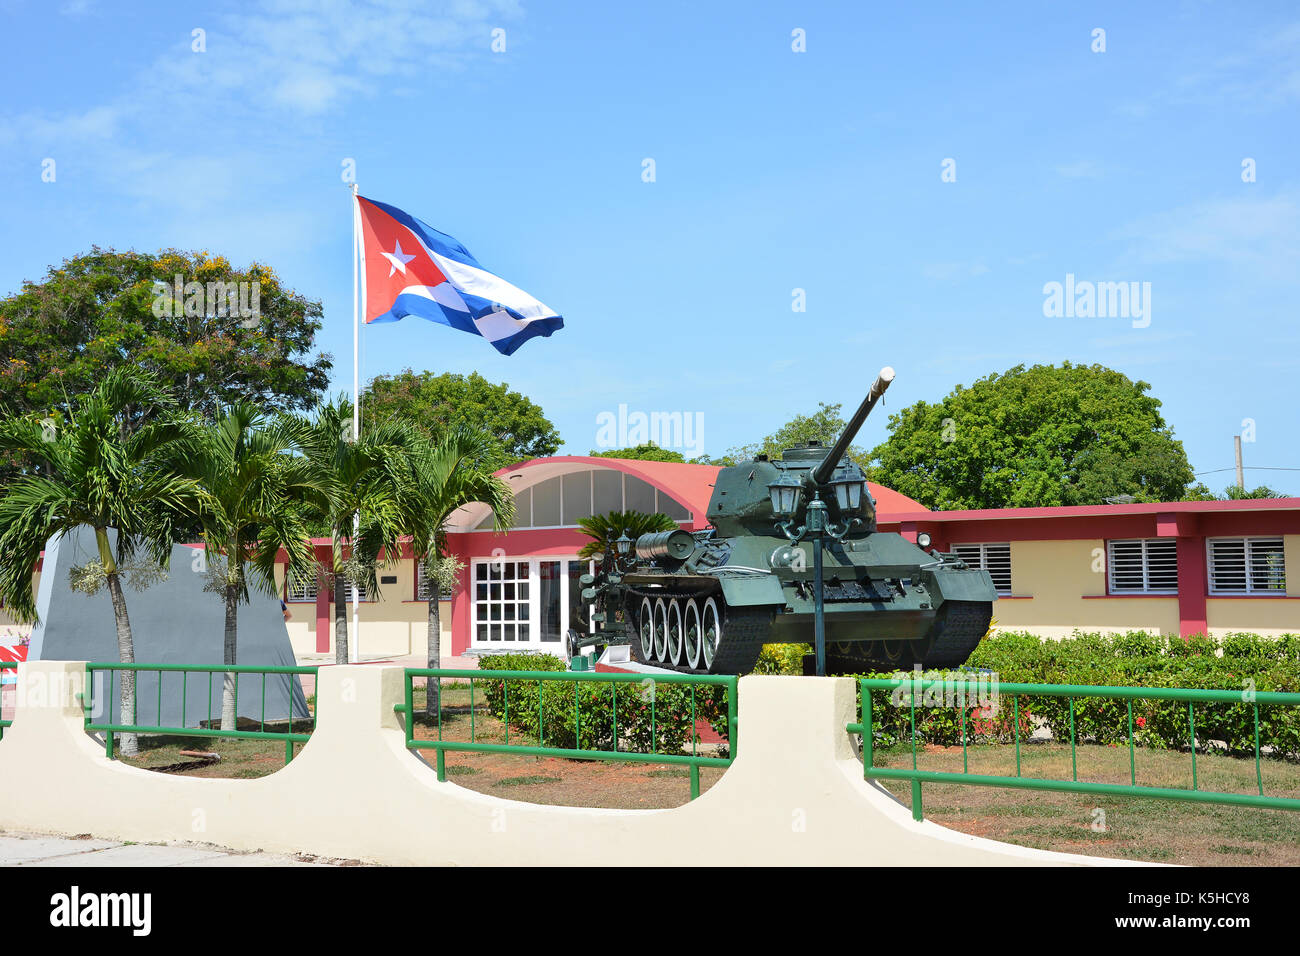 the story of the failed invasion of cuba at the bay of pigs The diplomatic fallout from the failed bay of pigs invasion was considerable and led to an increase of cold war tensions background since the cuban revolution of 1959, fidel castro had grown increasingly antagonistic towards the united states and their interests.